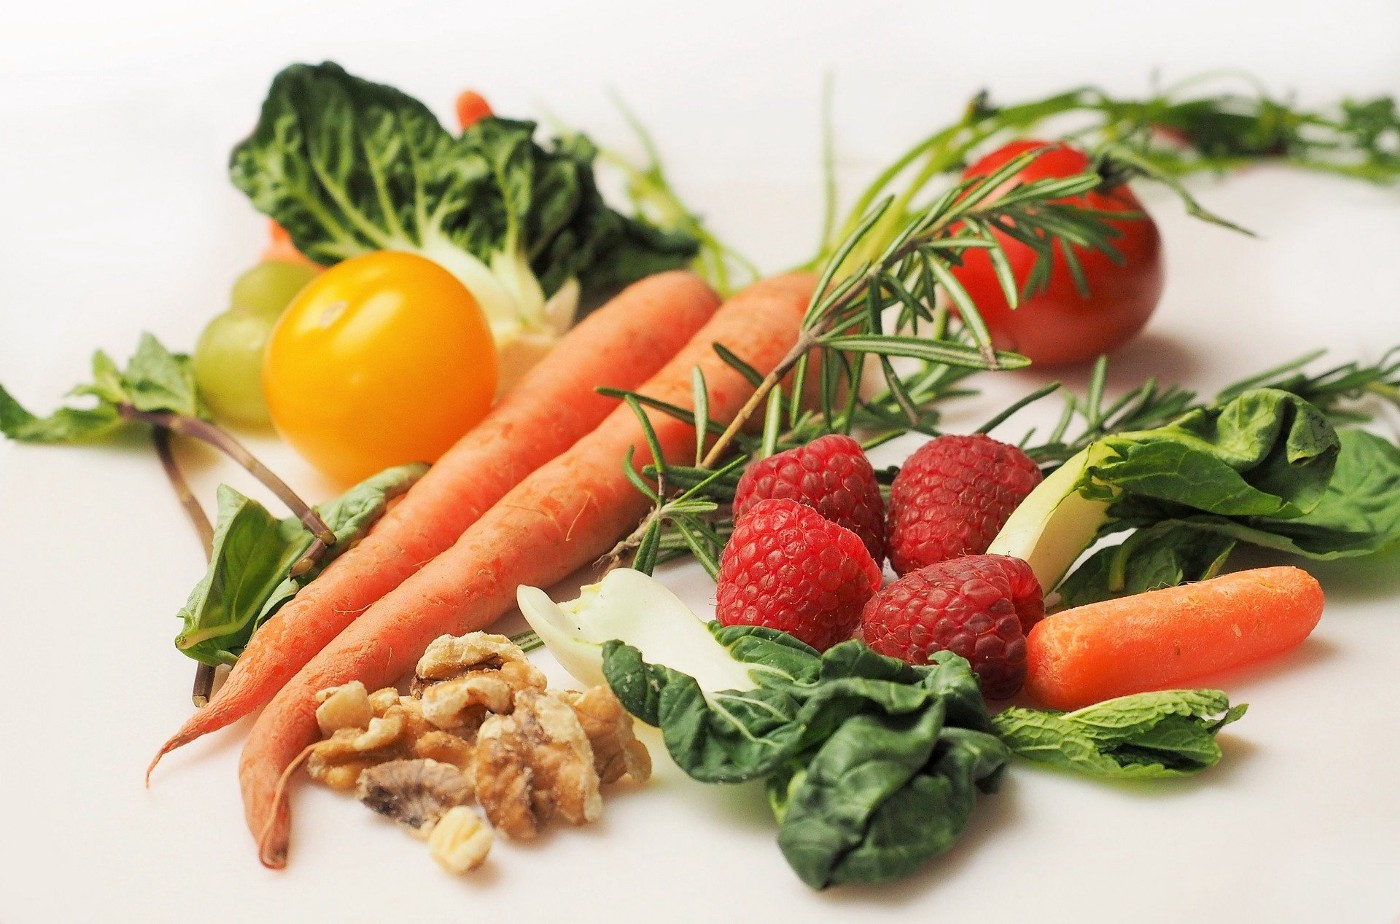 Easy Tips To Make Healthy Recipes